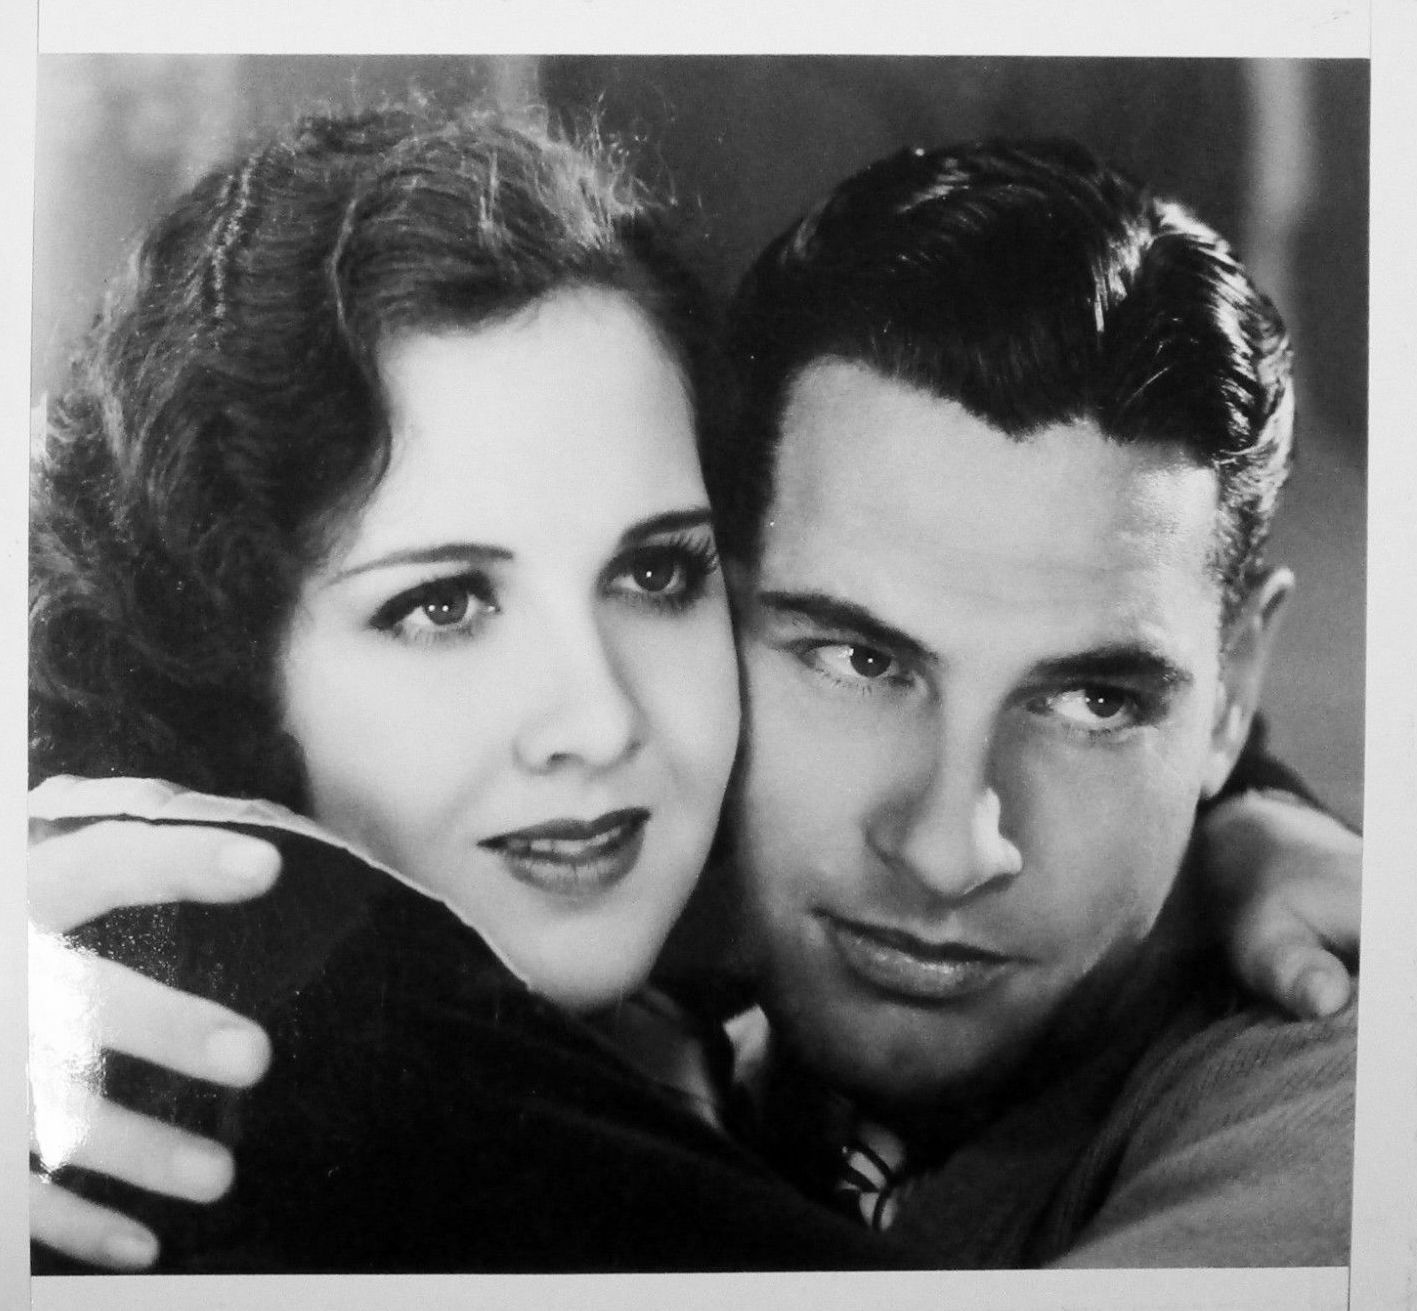 Richard arlen by Annis Jean Patee on Stars Of The Silent